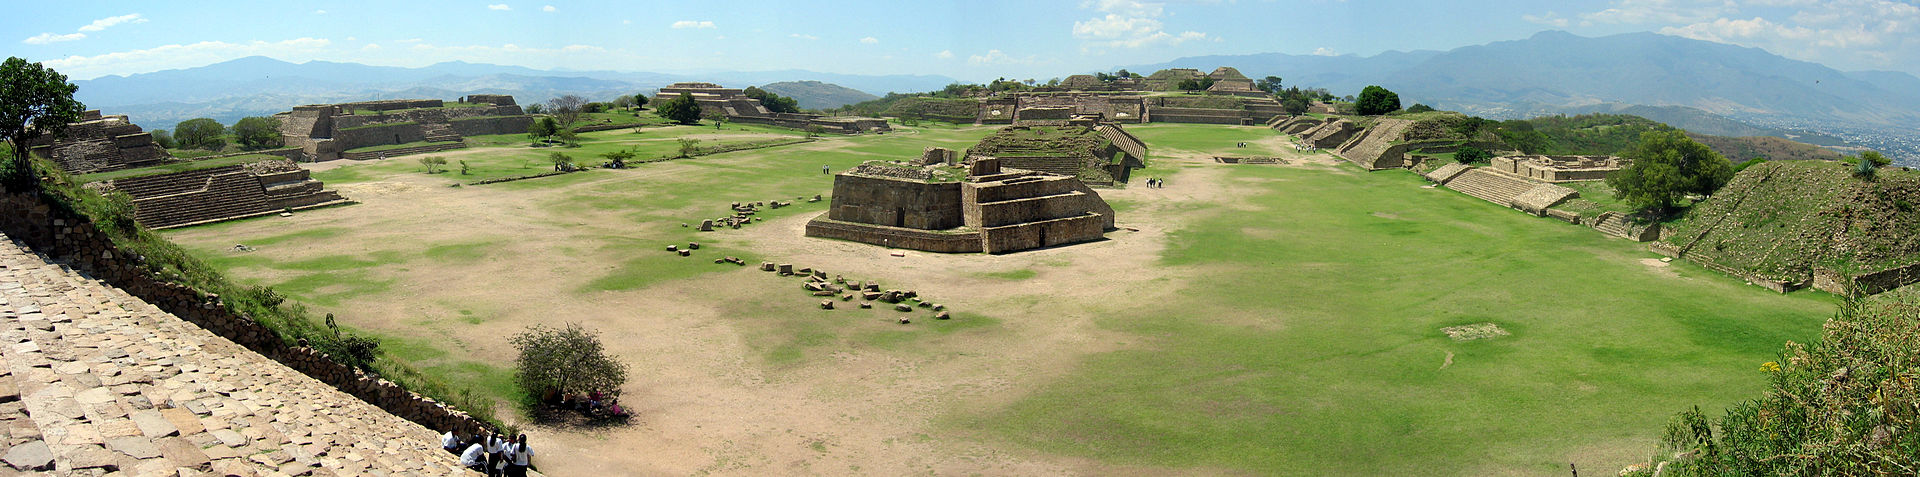 Panorama of monte alban from the south platform